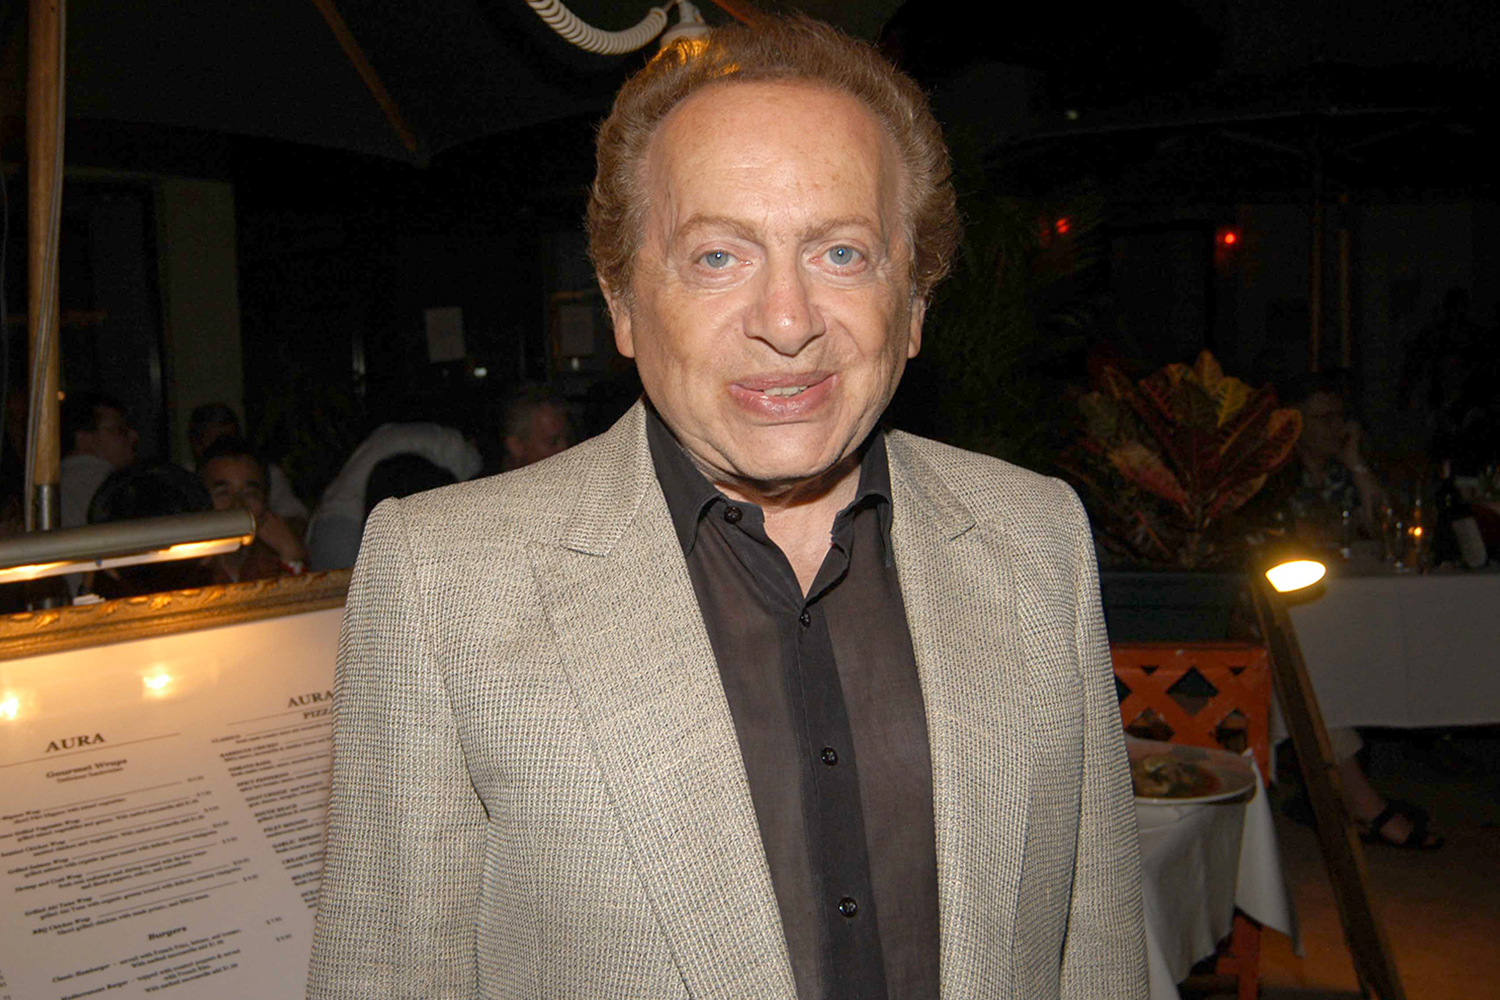 Jackie Mason attends Adam + Eve Clothing Launch Afterparty at Cafeteria at Cafeteria on February 18, 2005 in Miami Beach, FL.